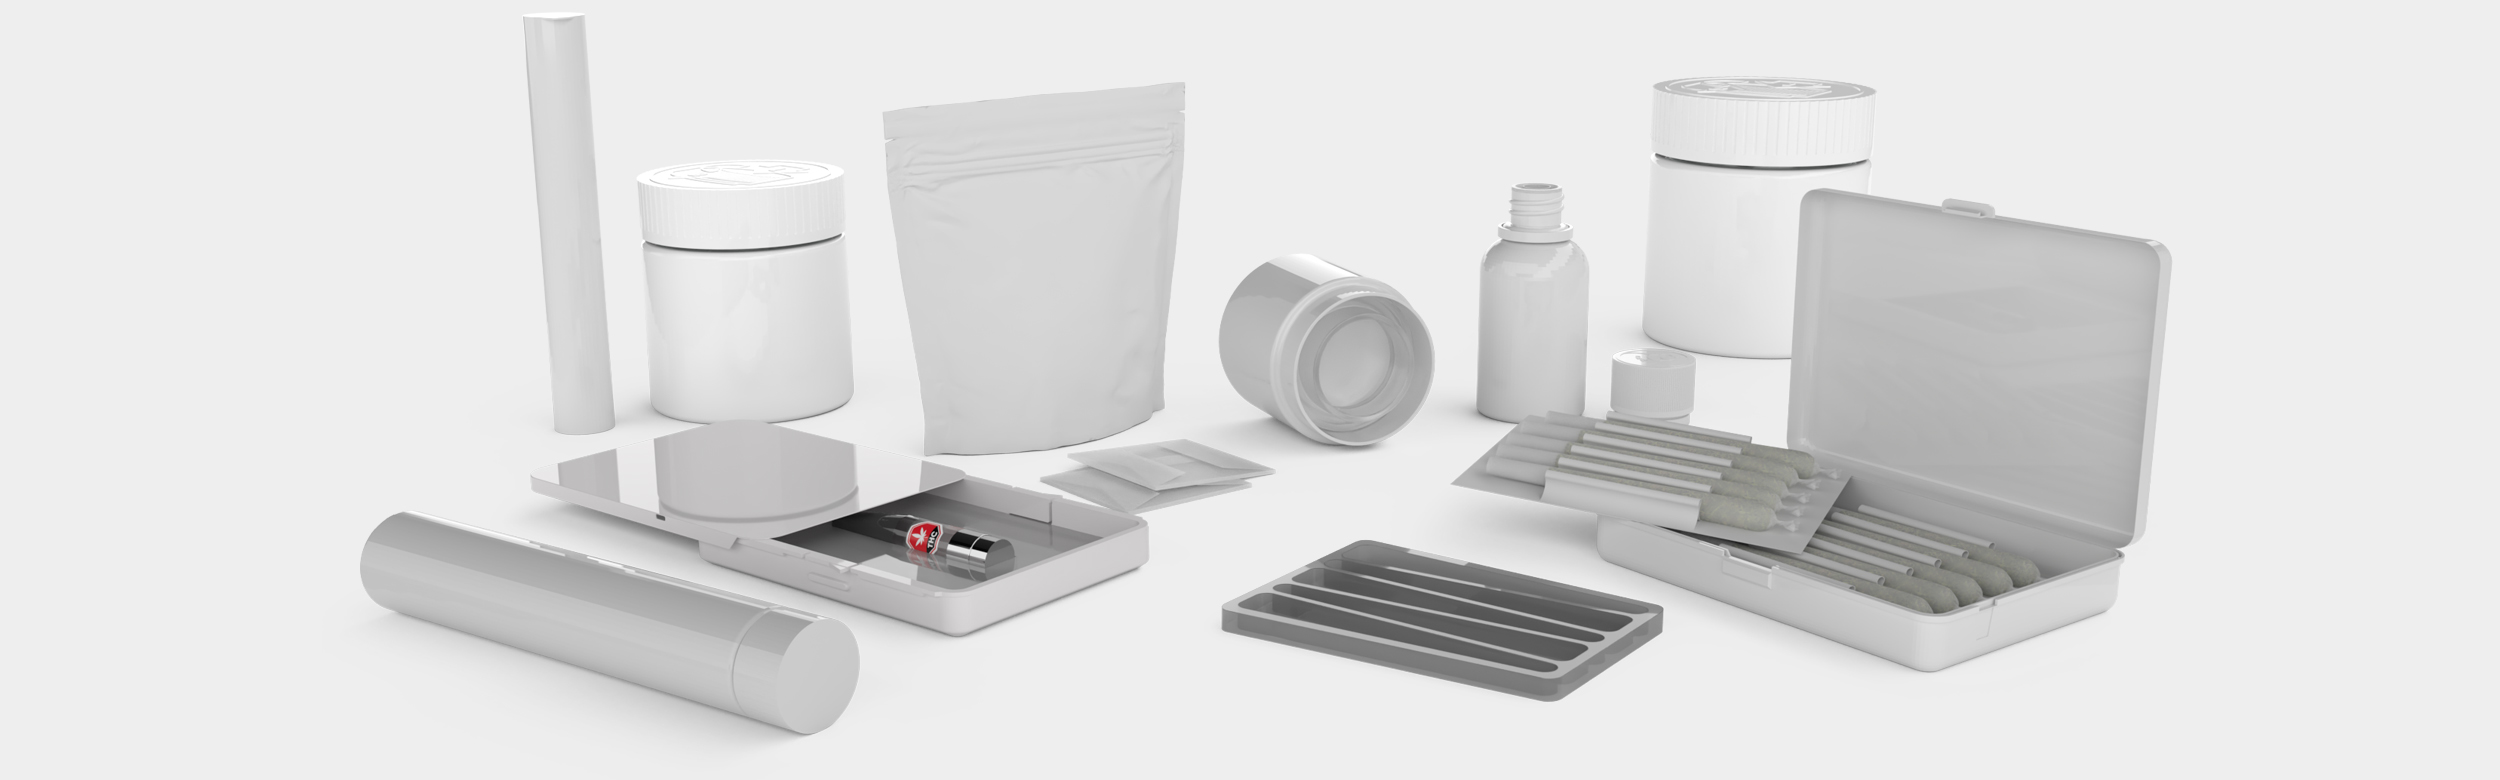 Cannasupplies Child Resistant Packaging Solutions for Cannabis